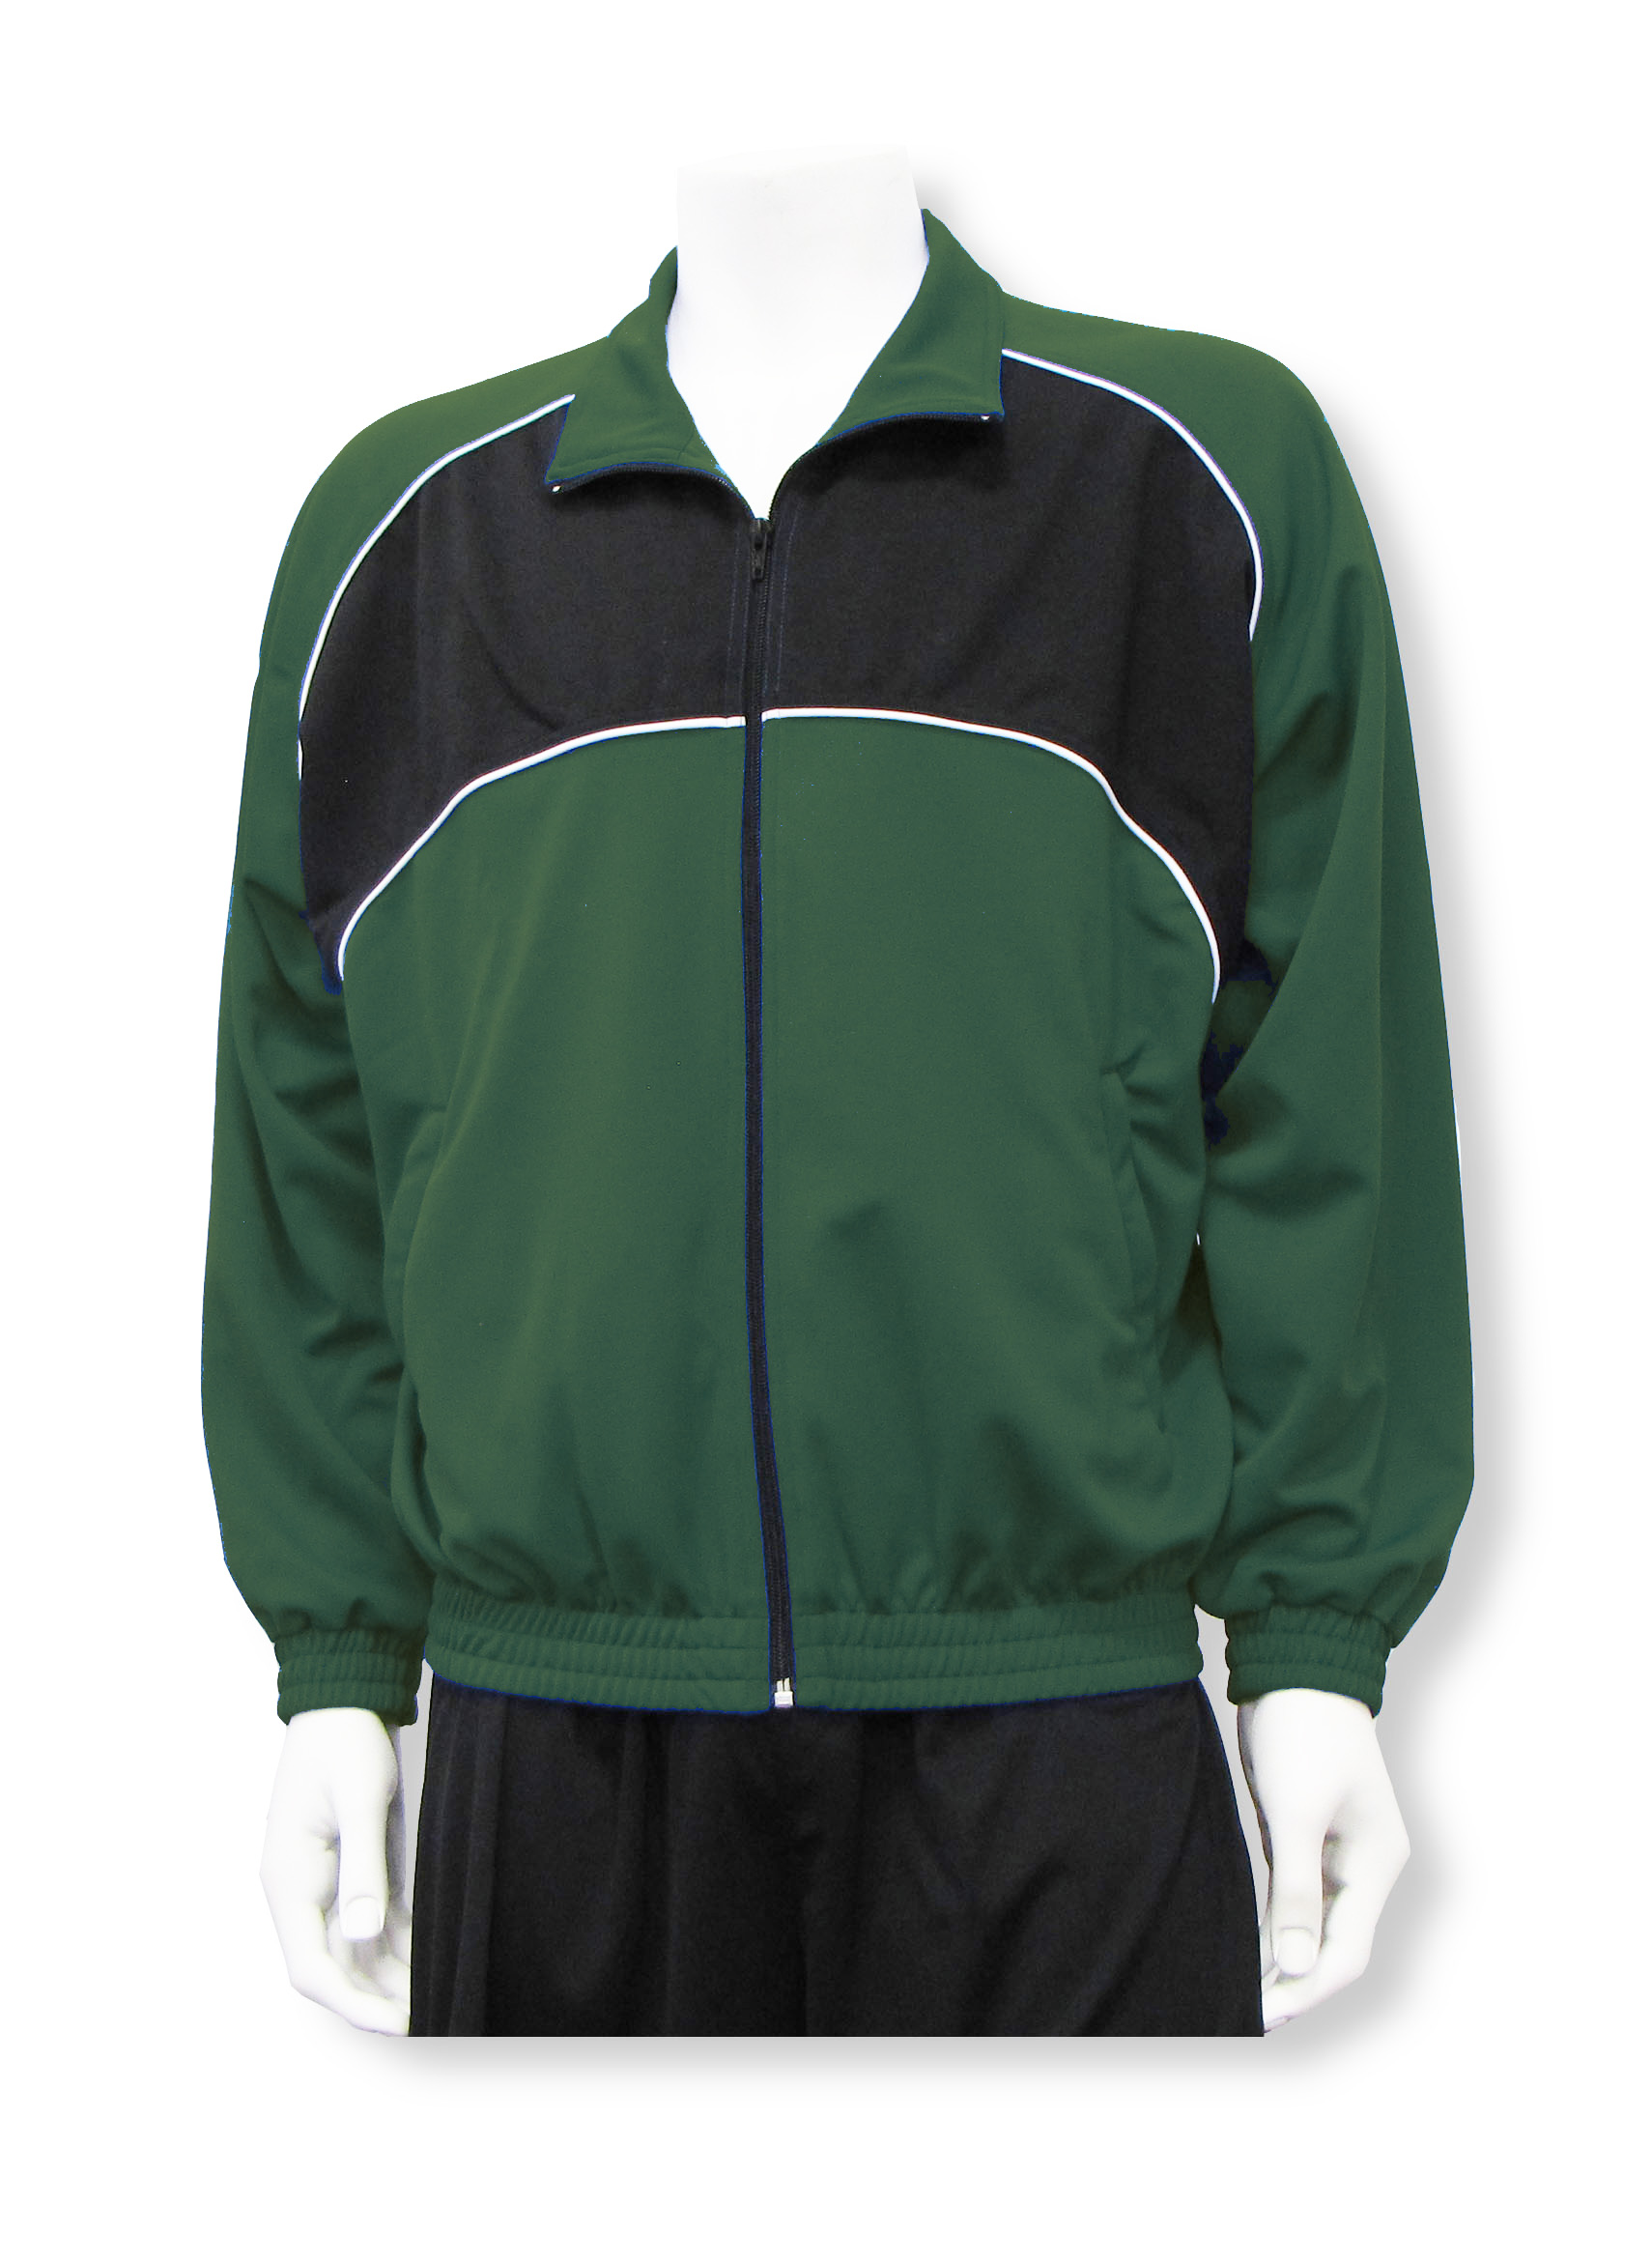 Crossfire soccer warm up jacket in forest/black by Code Four Athletics